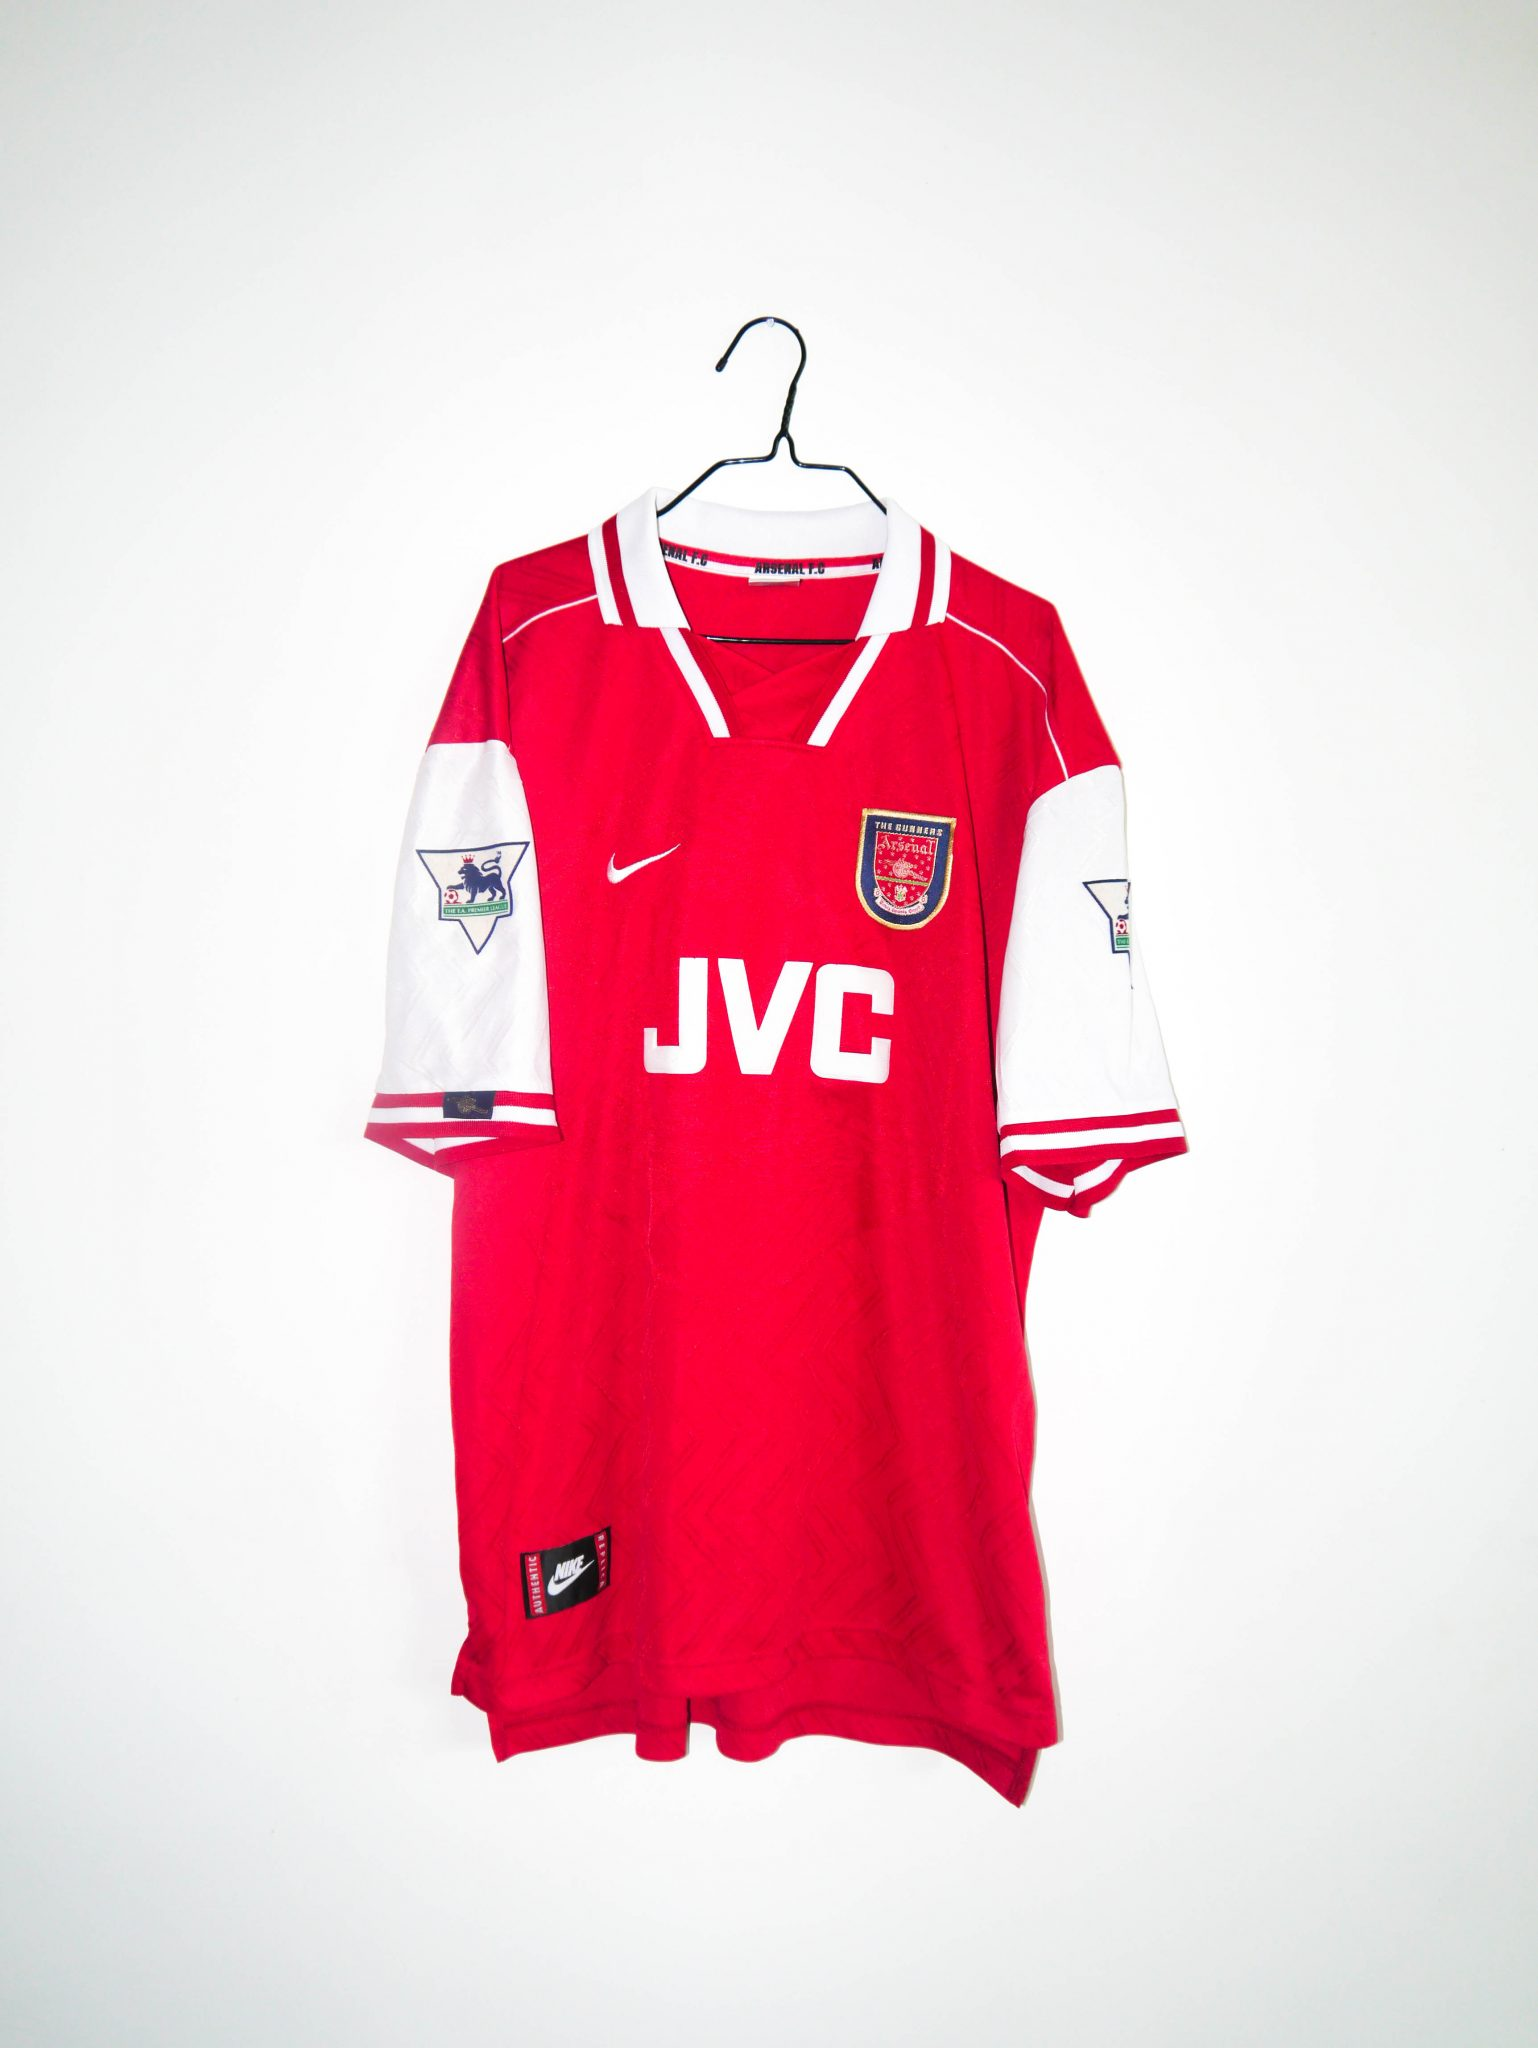 b56cf1fbf Home   Shop   English Clubs   Arsenal   Original 1996 97 Arsenal home jersey   11 OVERMARS – XL